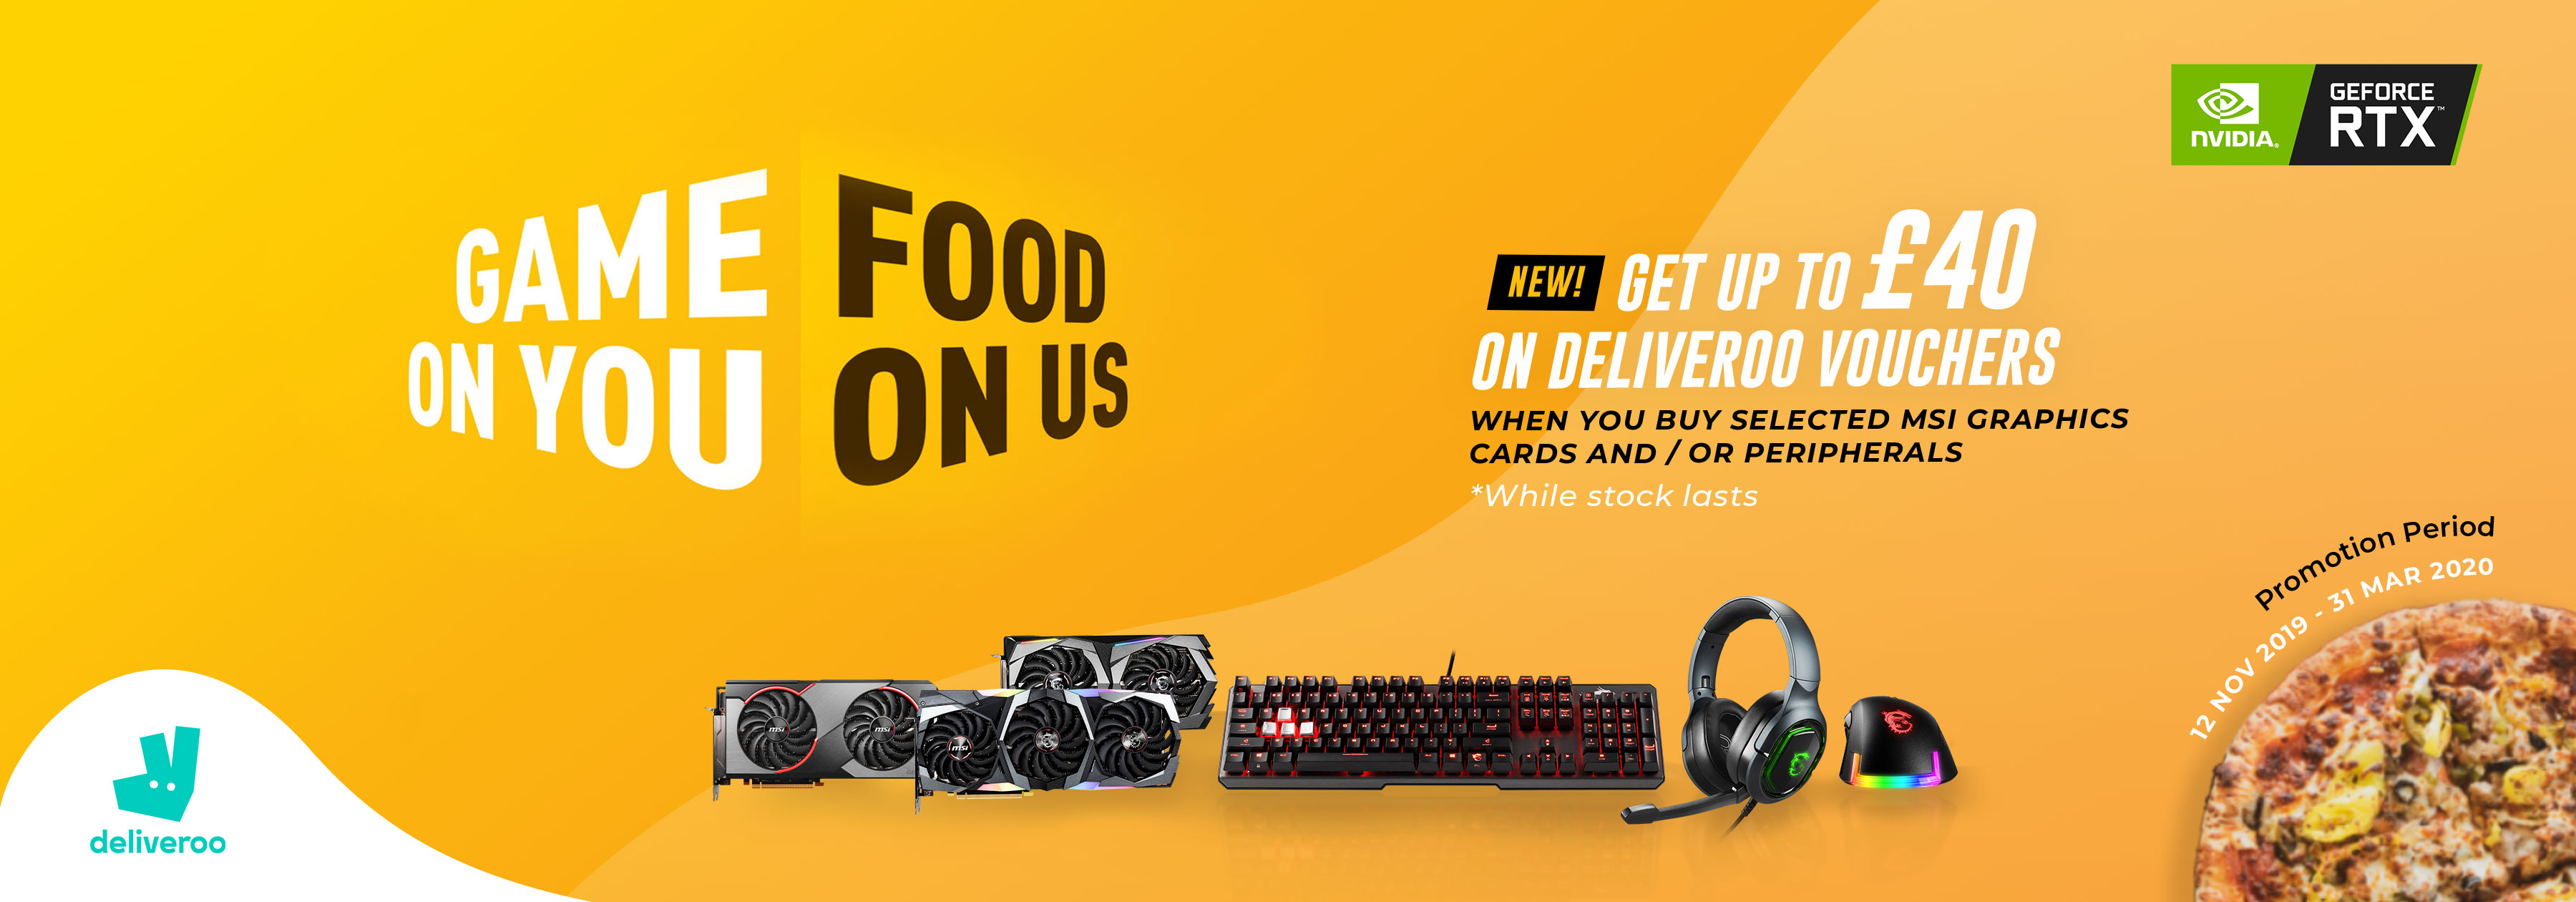 Game On You, Food On Us